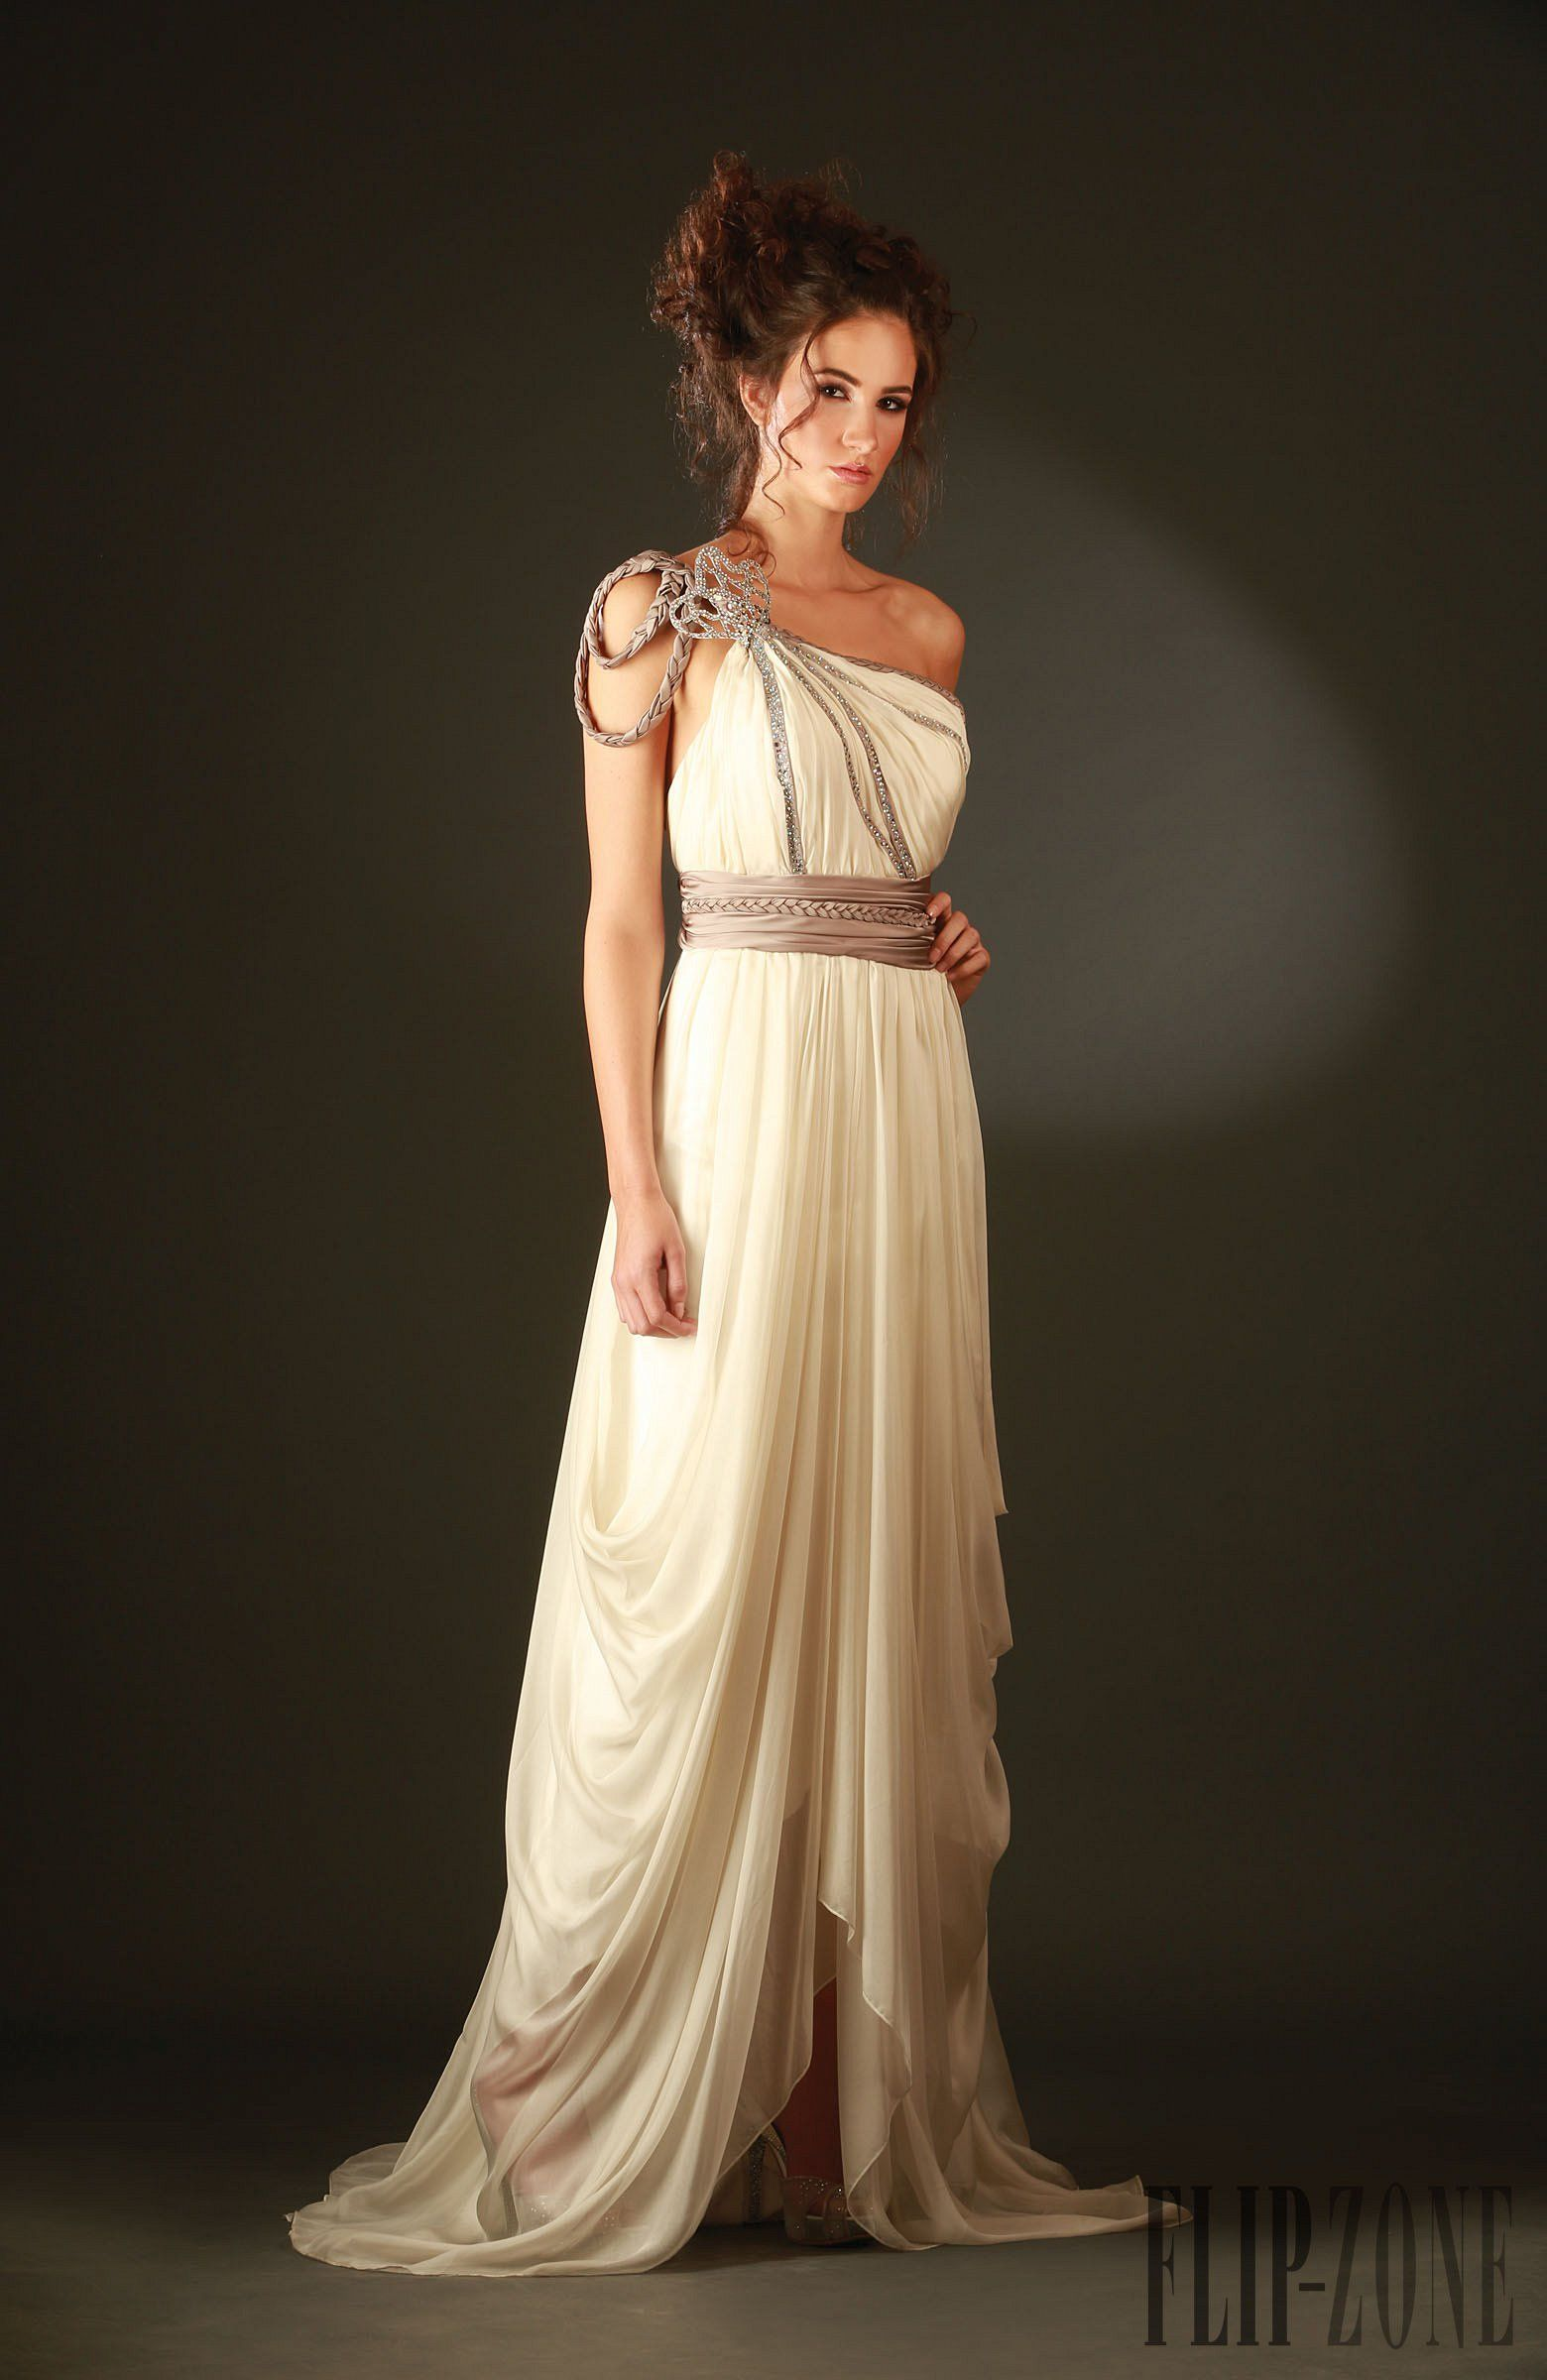 Hanna Touma Goddess costume, Greek goddess costume